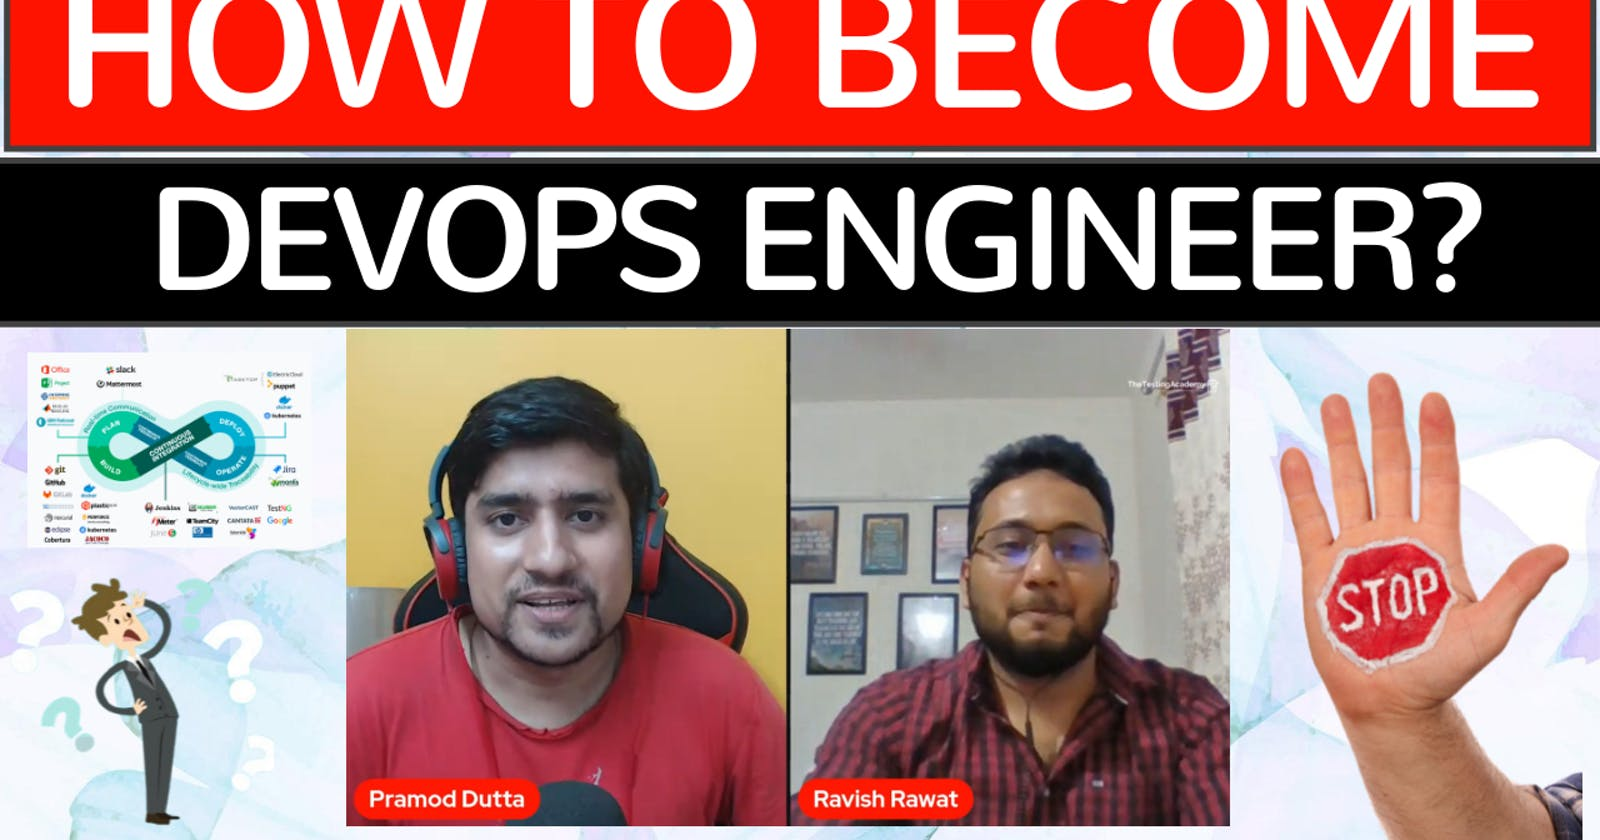 How To Become Dev Ops Engineer?